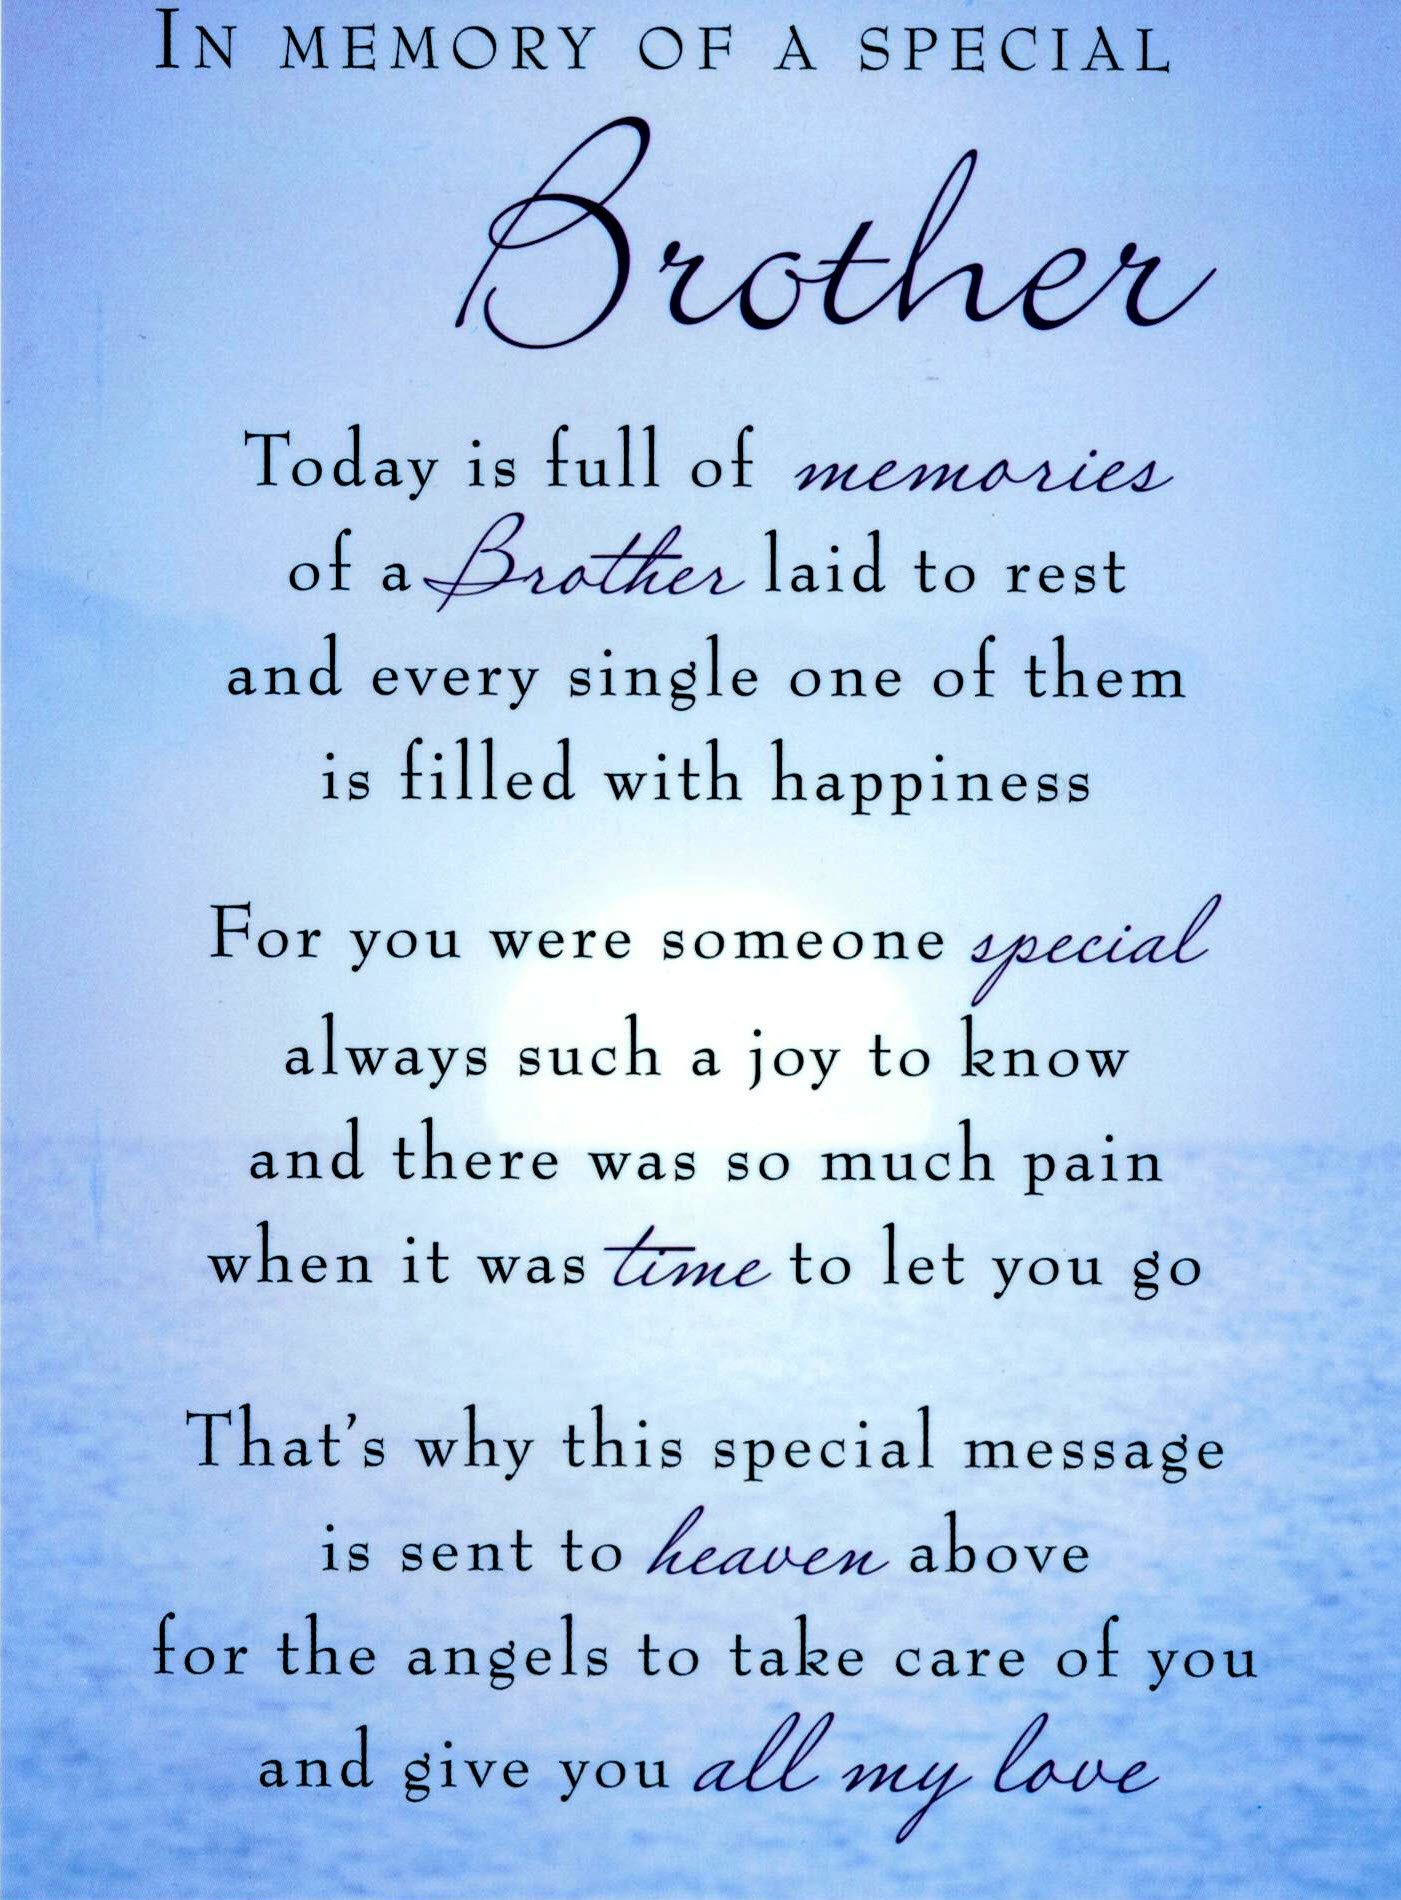 In Memory Of A Special Brother Today Is Full Of Memories Of A